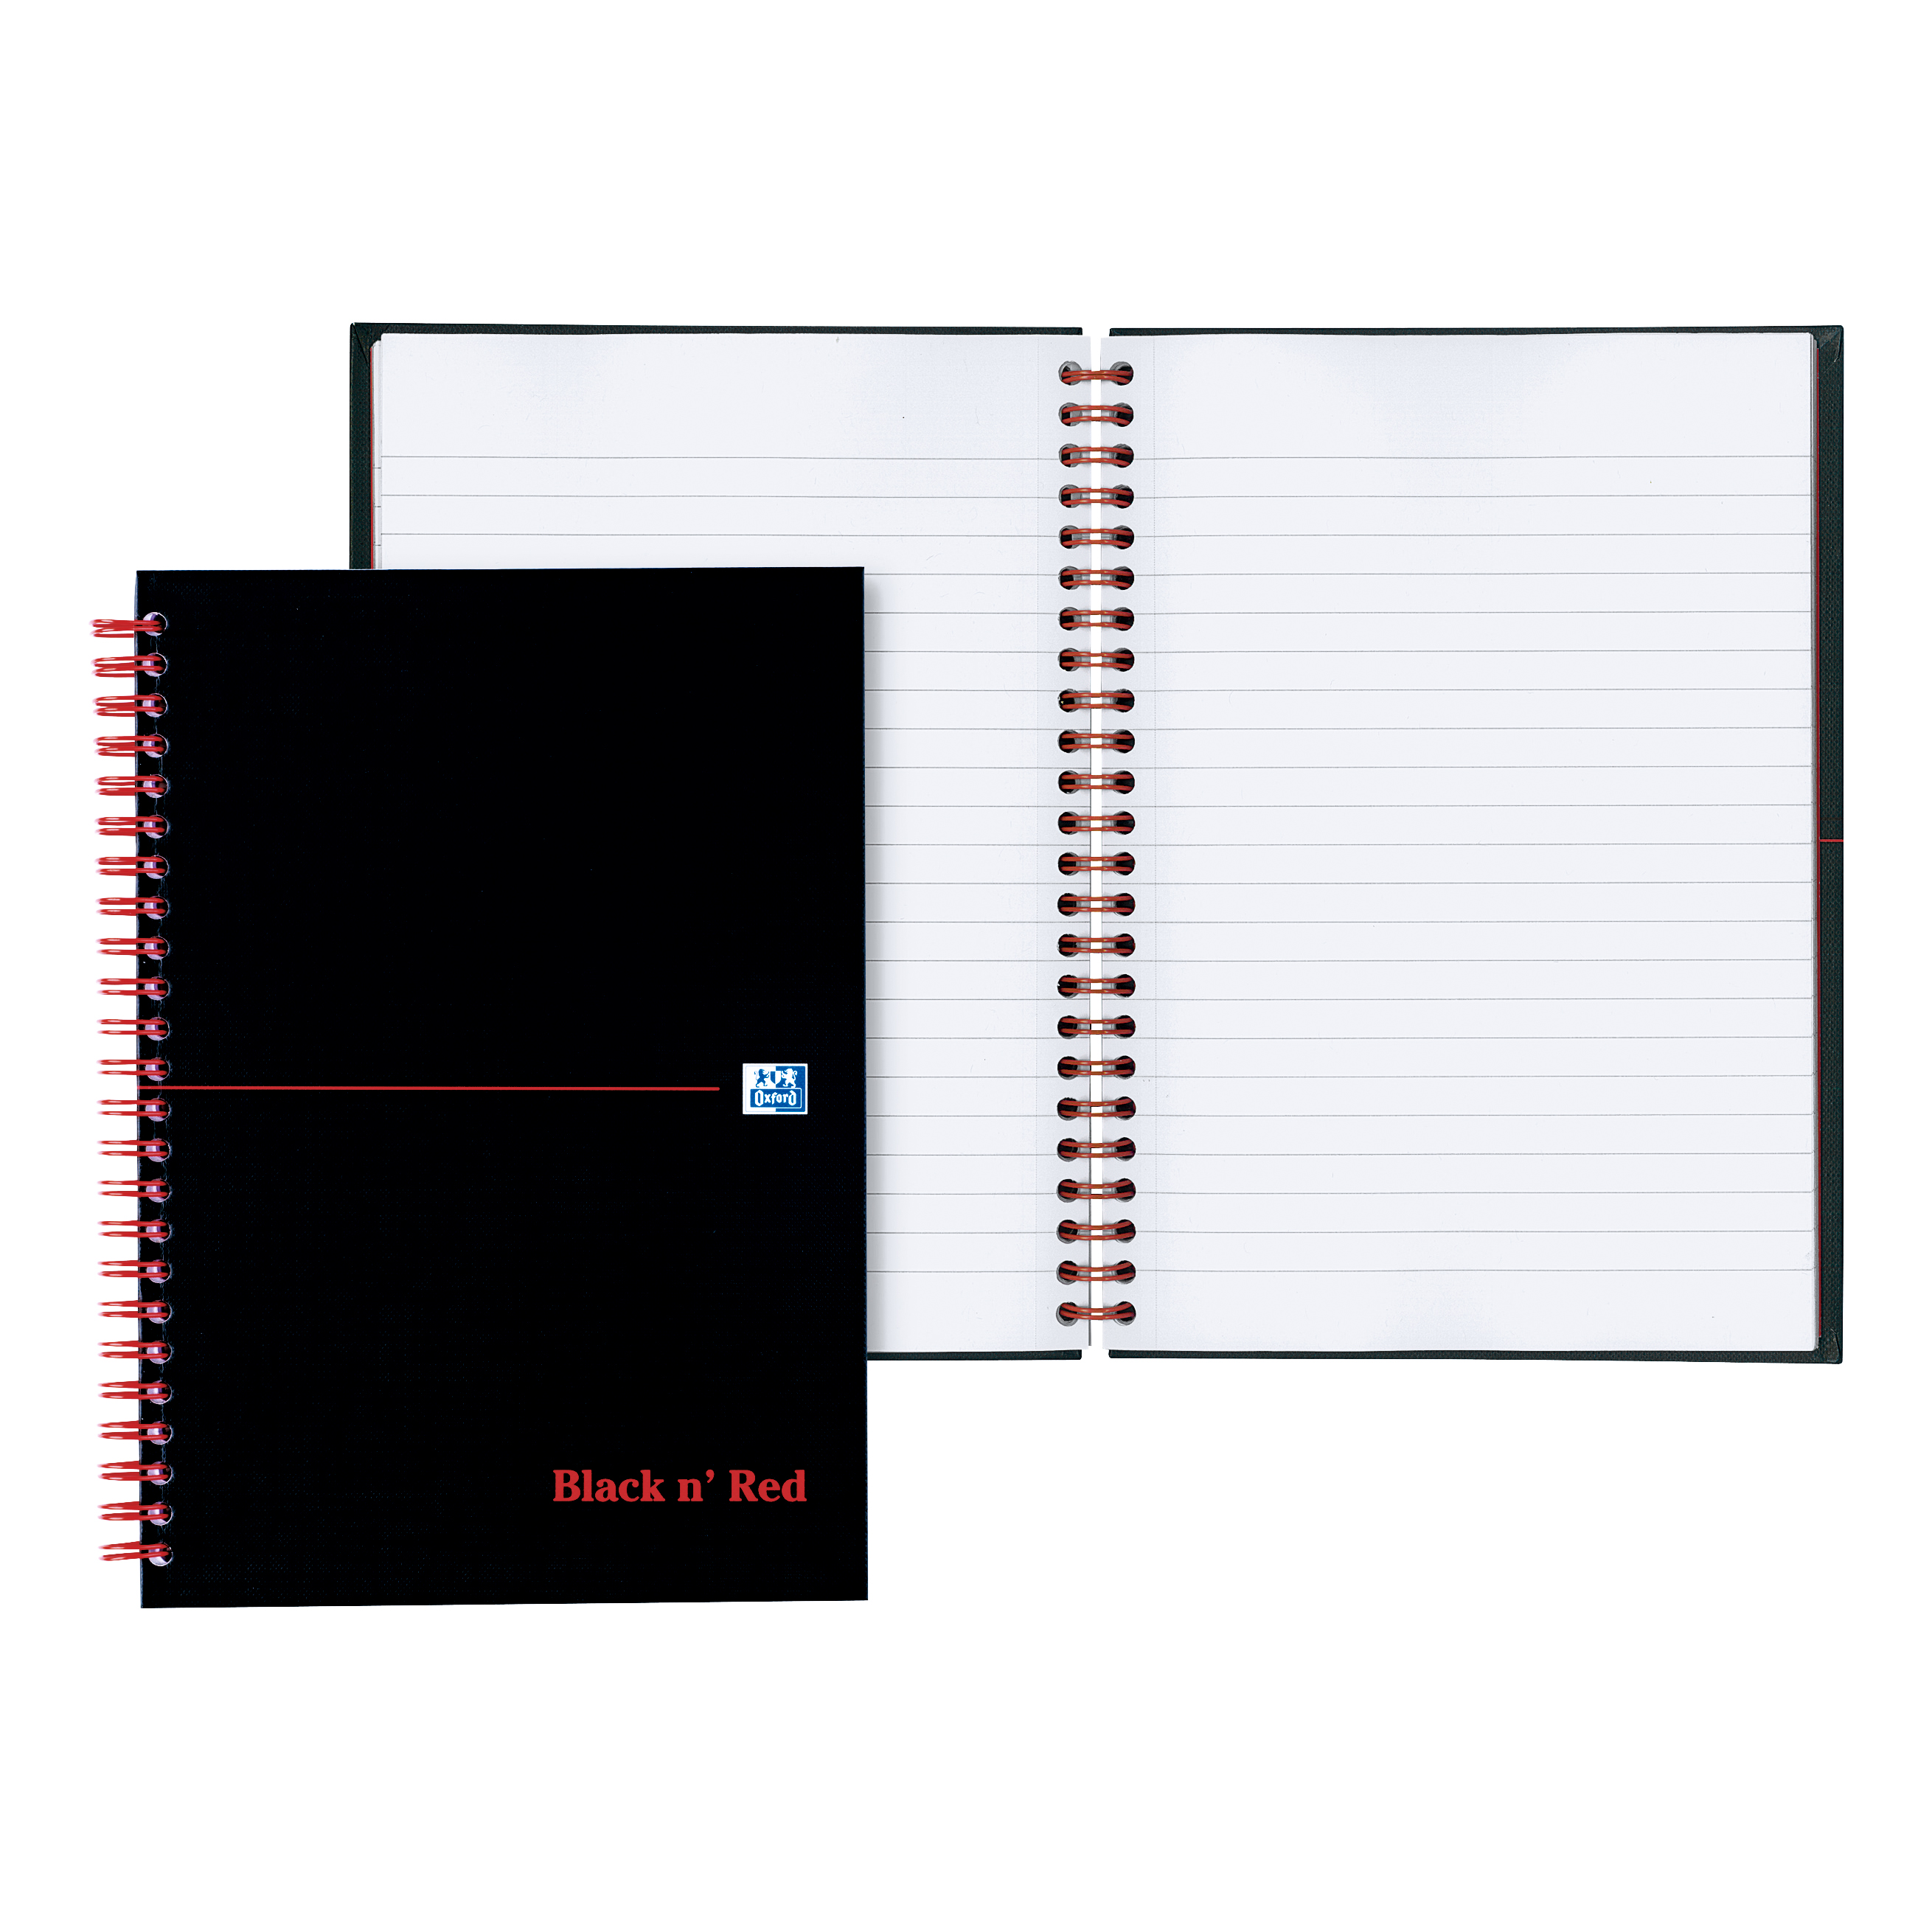 Black n Red Notebook Wirebound 90gsm Ruled and Perforated 140pp A6 Glossy Black Ref 100080448 Pack 5